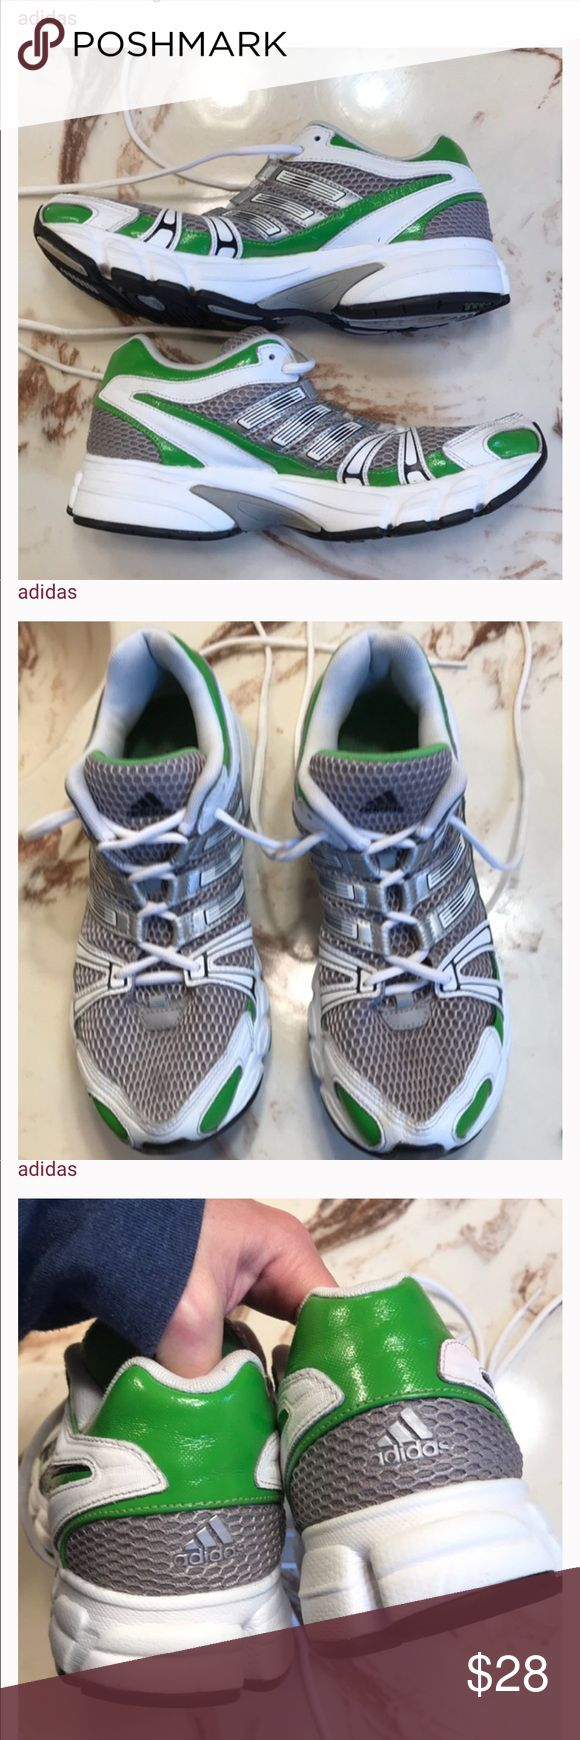 Lime green Adidas tennis shoes! Fabulous condition! No flaws, except creasing from wear.  Thx 4 browsing! adidas Shoes Athletic Shoes